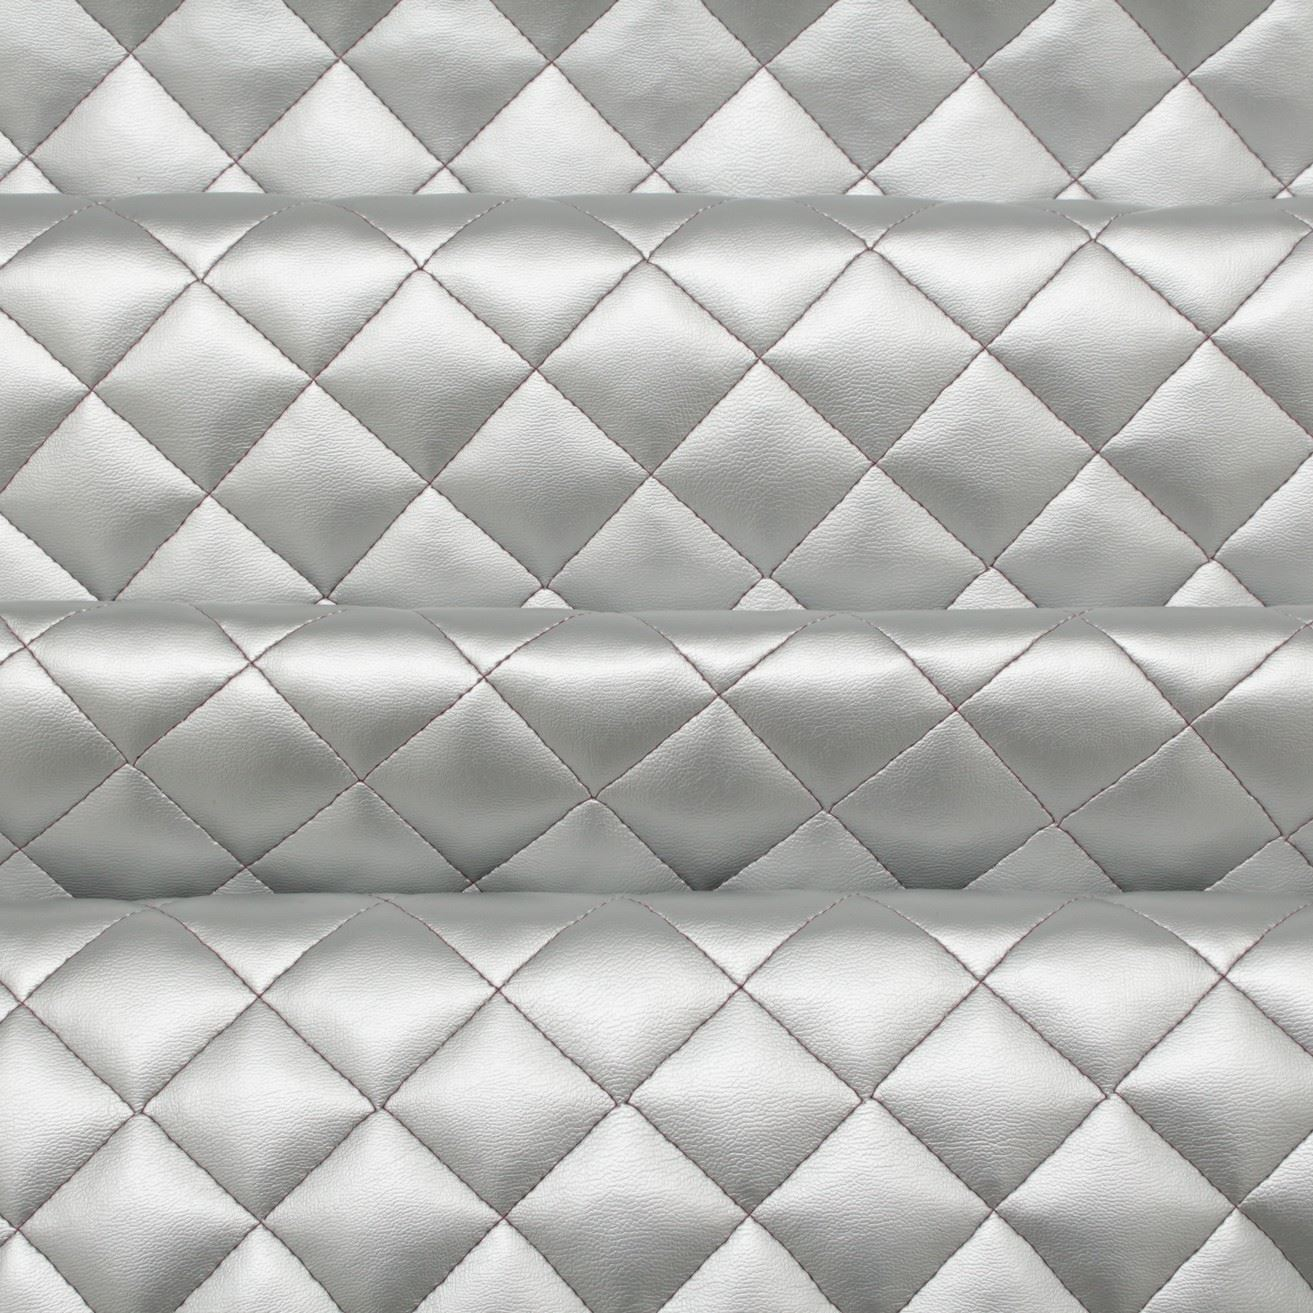 Diamond Quilted Padded Faux Leather Upholstery Fabric I